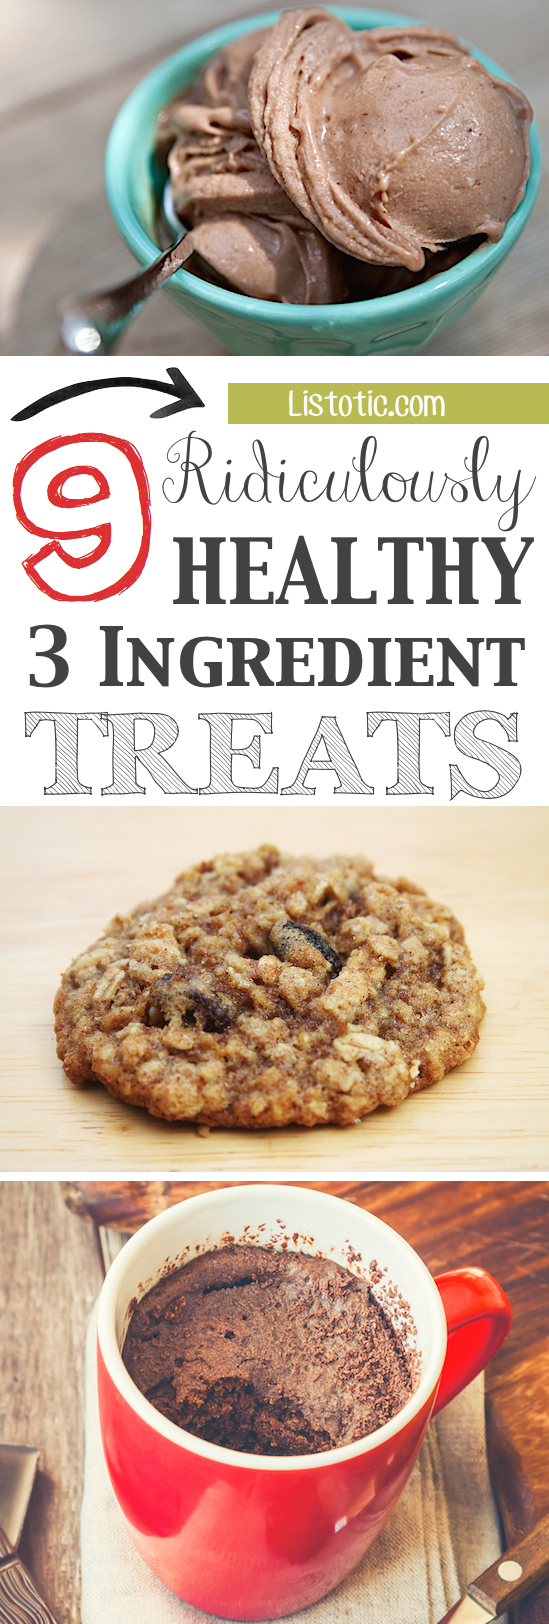 Quick, easy and healthy 3 ingredient snacks for kids, teens and adults! The perfect guilt-free treats and desserts! These recipes are perfect for weight loss and health. Listotic.com